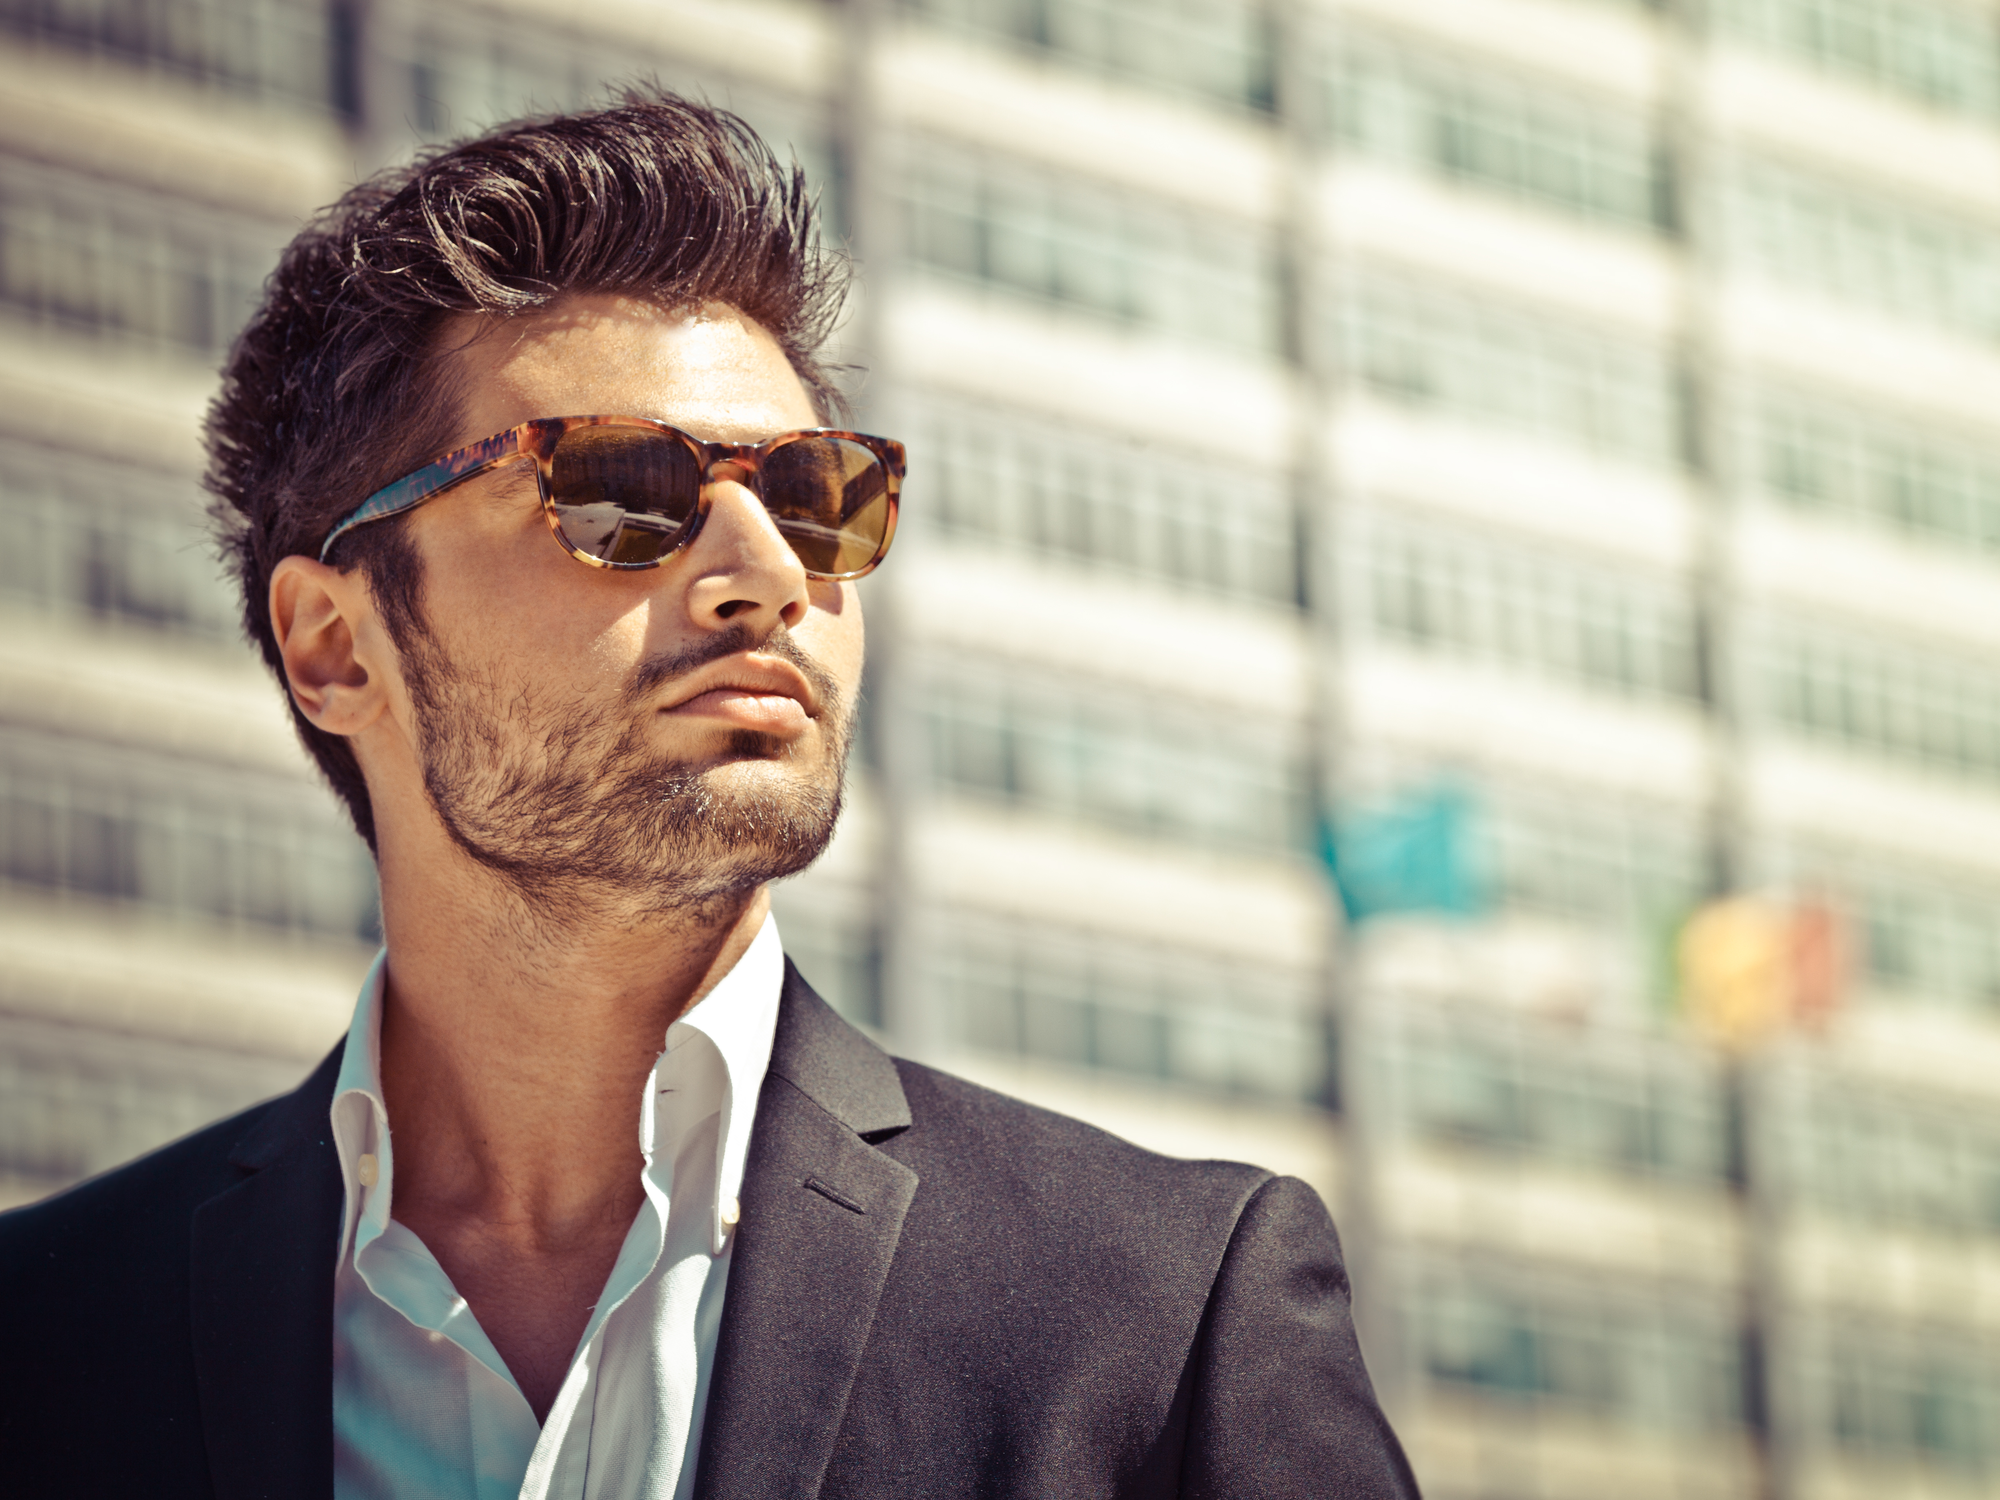 5 Easy Ways to Protect Your Eyes From the Sun